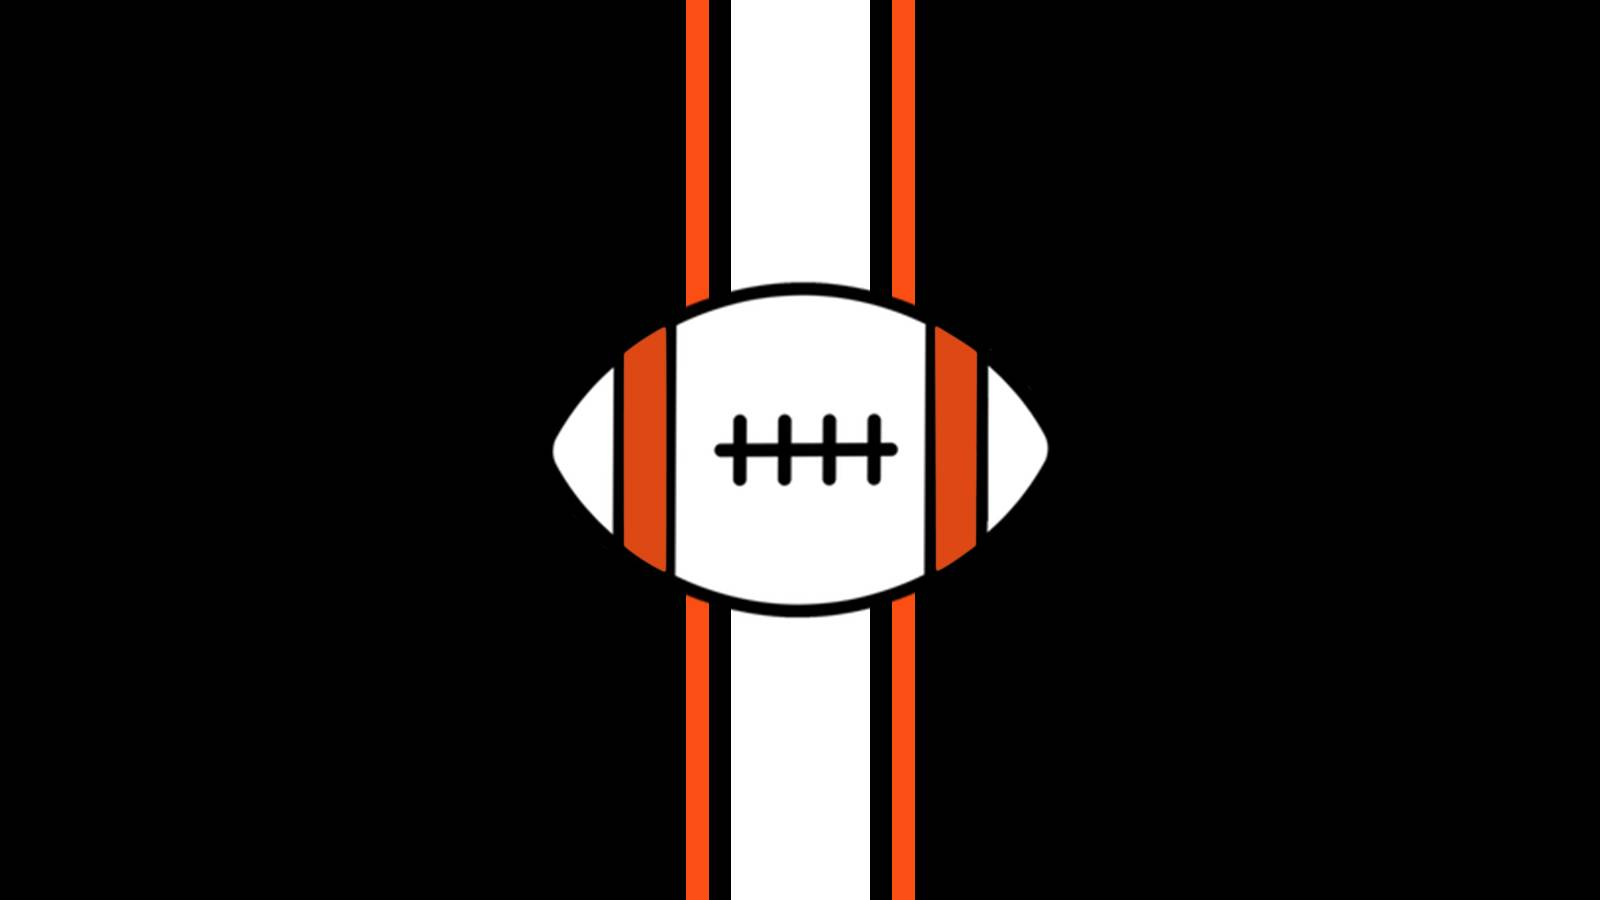 Dallas Cowboys at Cincinnati Bengals